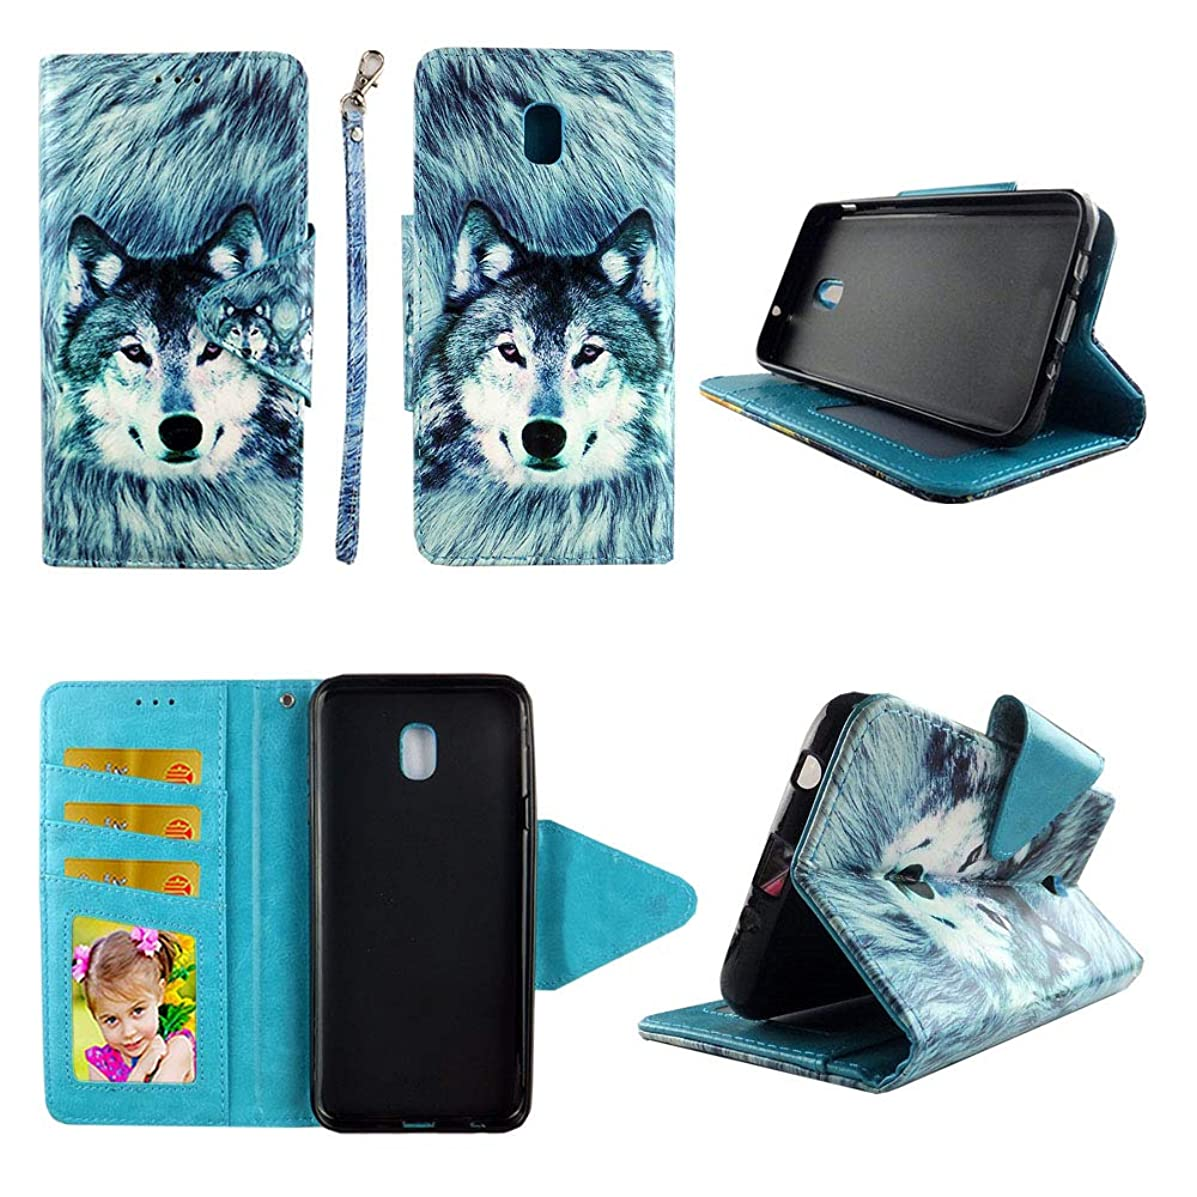 Snow Wolf Wallet Case for Samsung Galaxy J7 (2018) / J7 Refine / J7 V 2nd Gen / J7 Star Folio Standing Cover Card Slot Money Pocket Magnetic Closure Fashion Flip Pu Leather